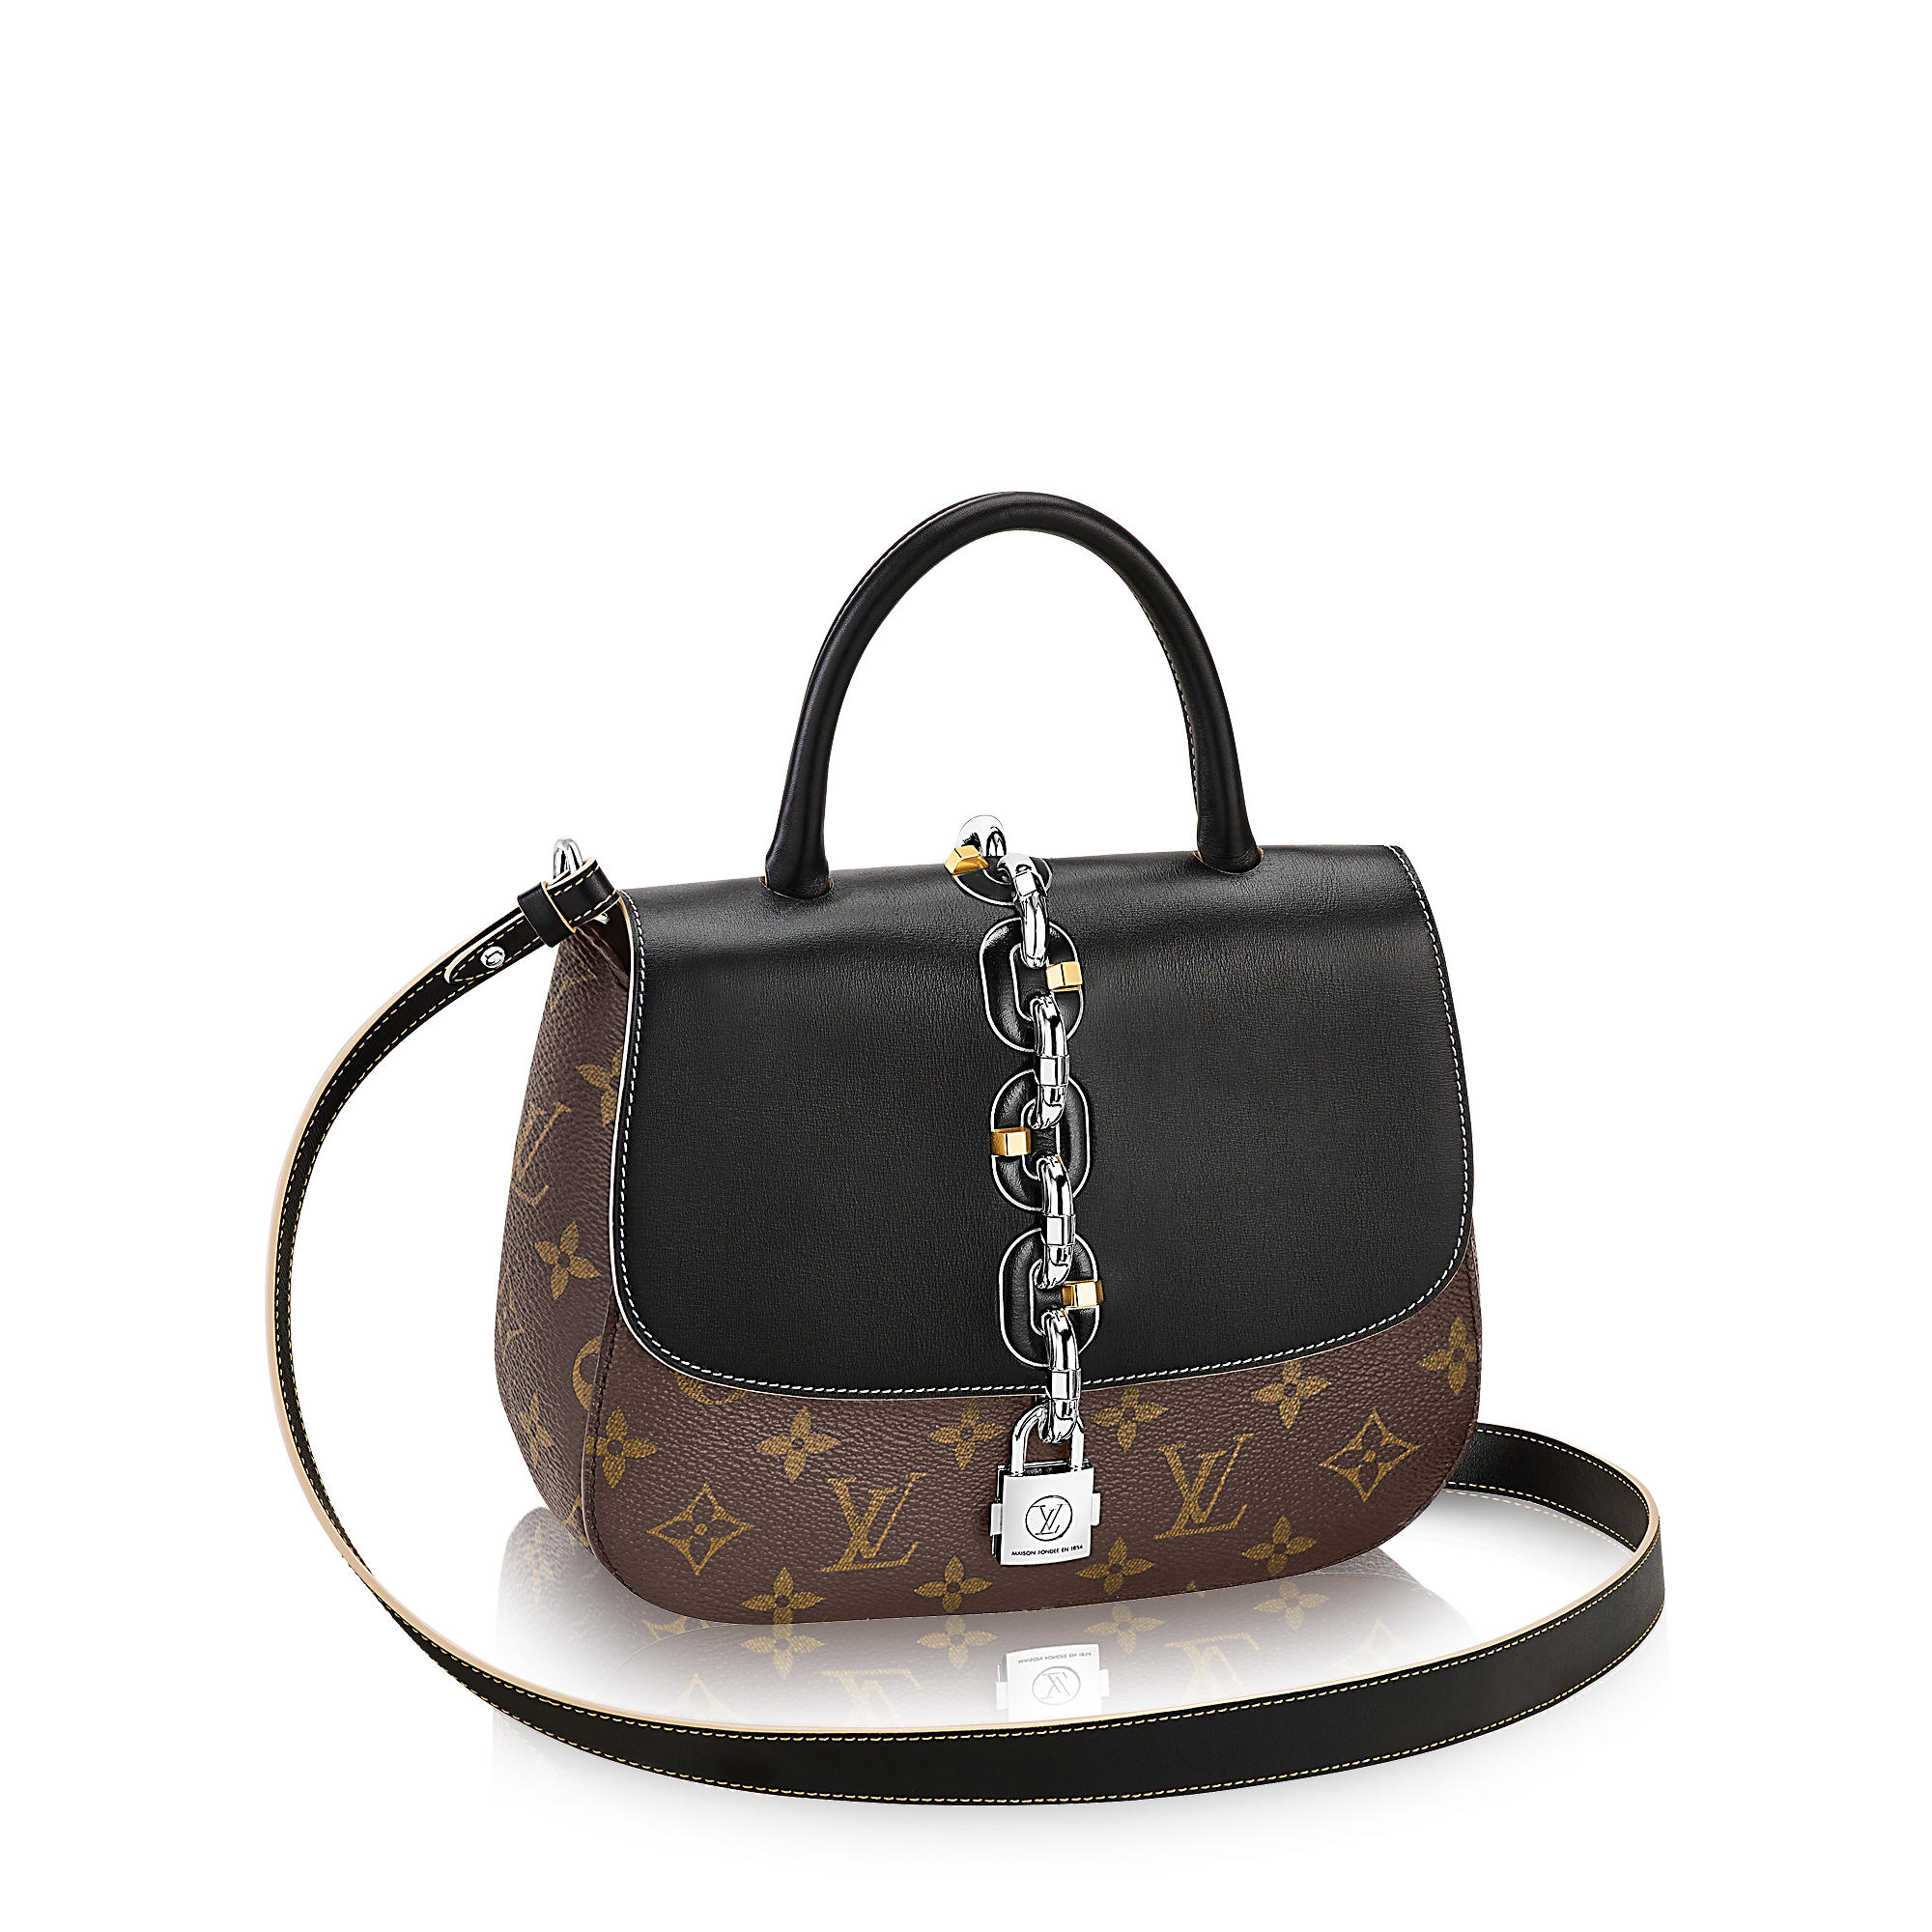 Louis Vuitton Donna Borsa Chain-It PM